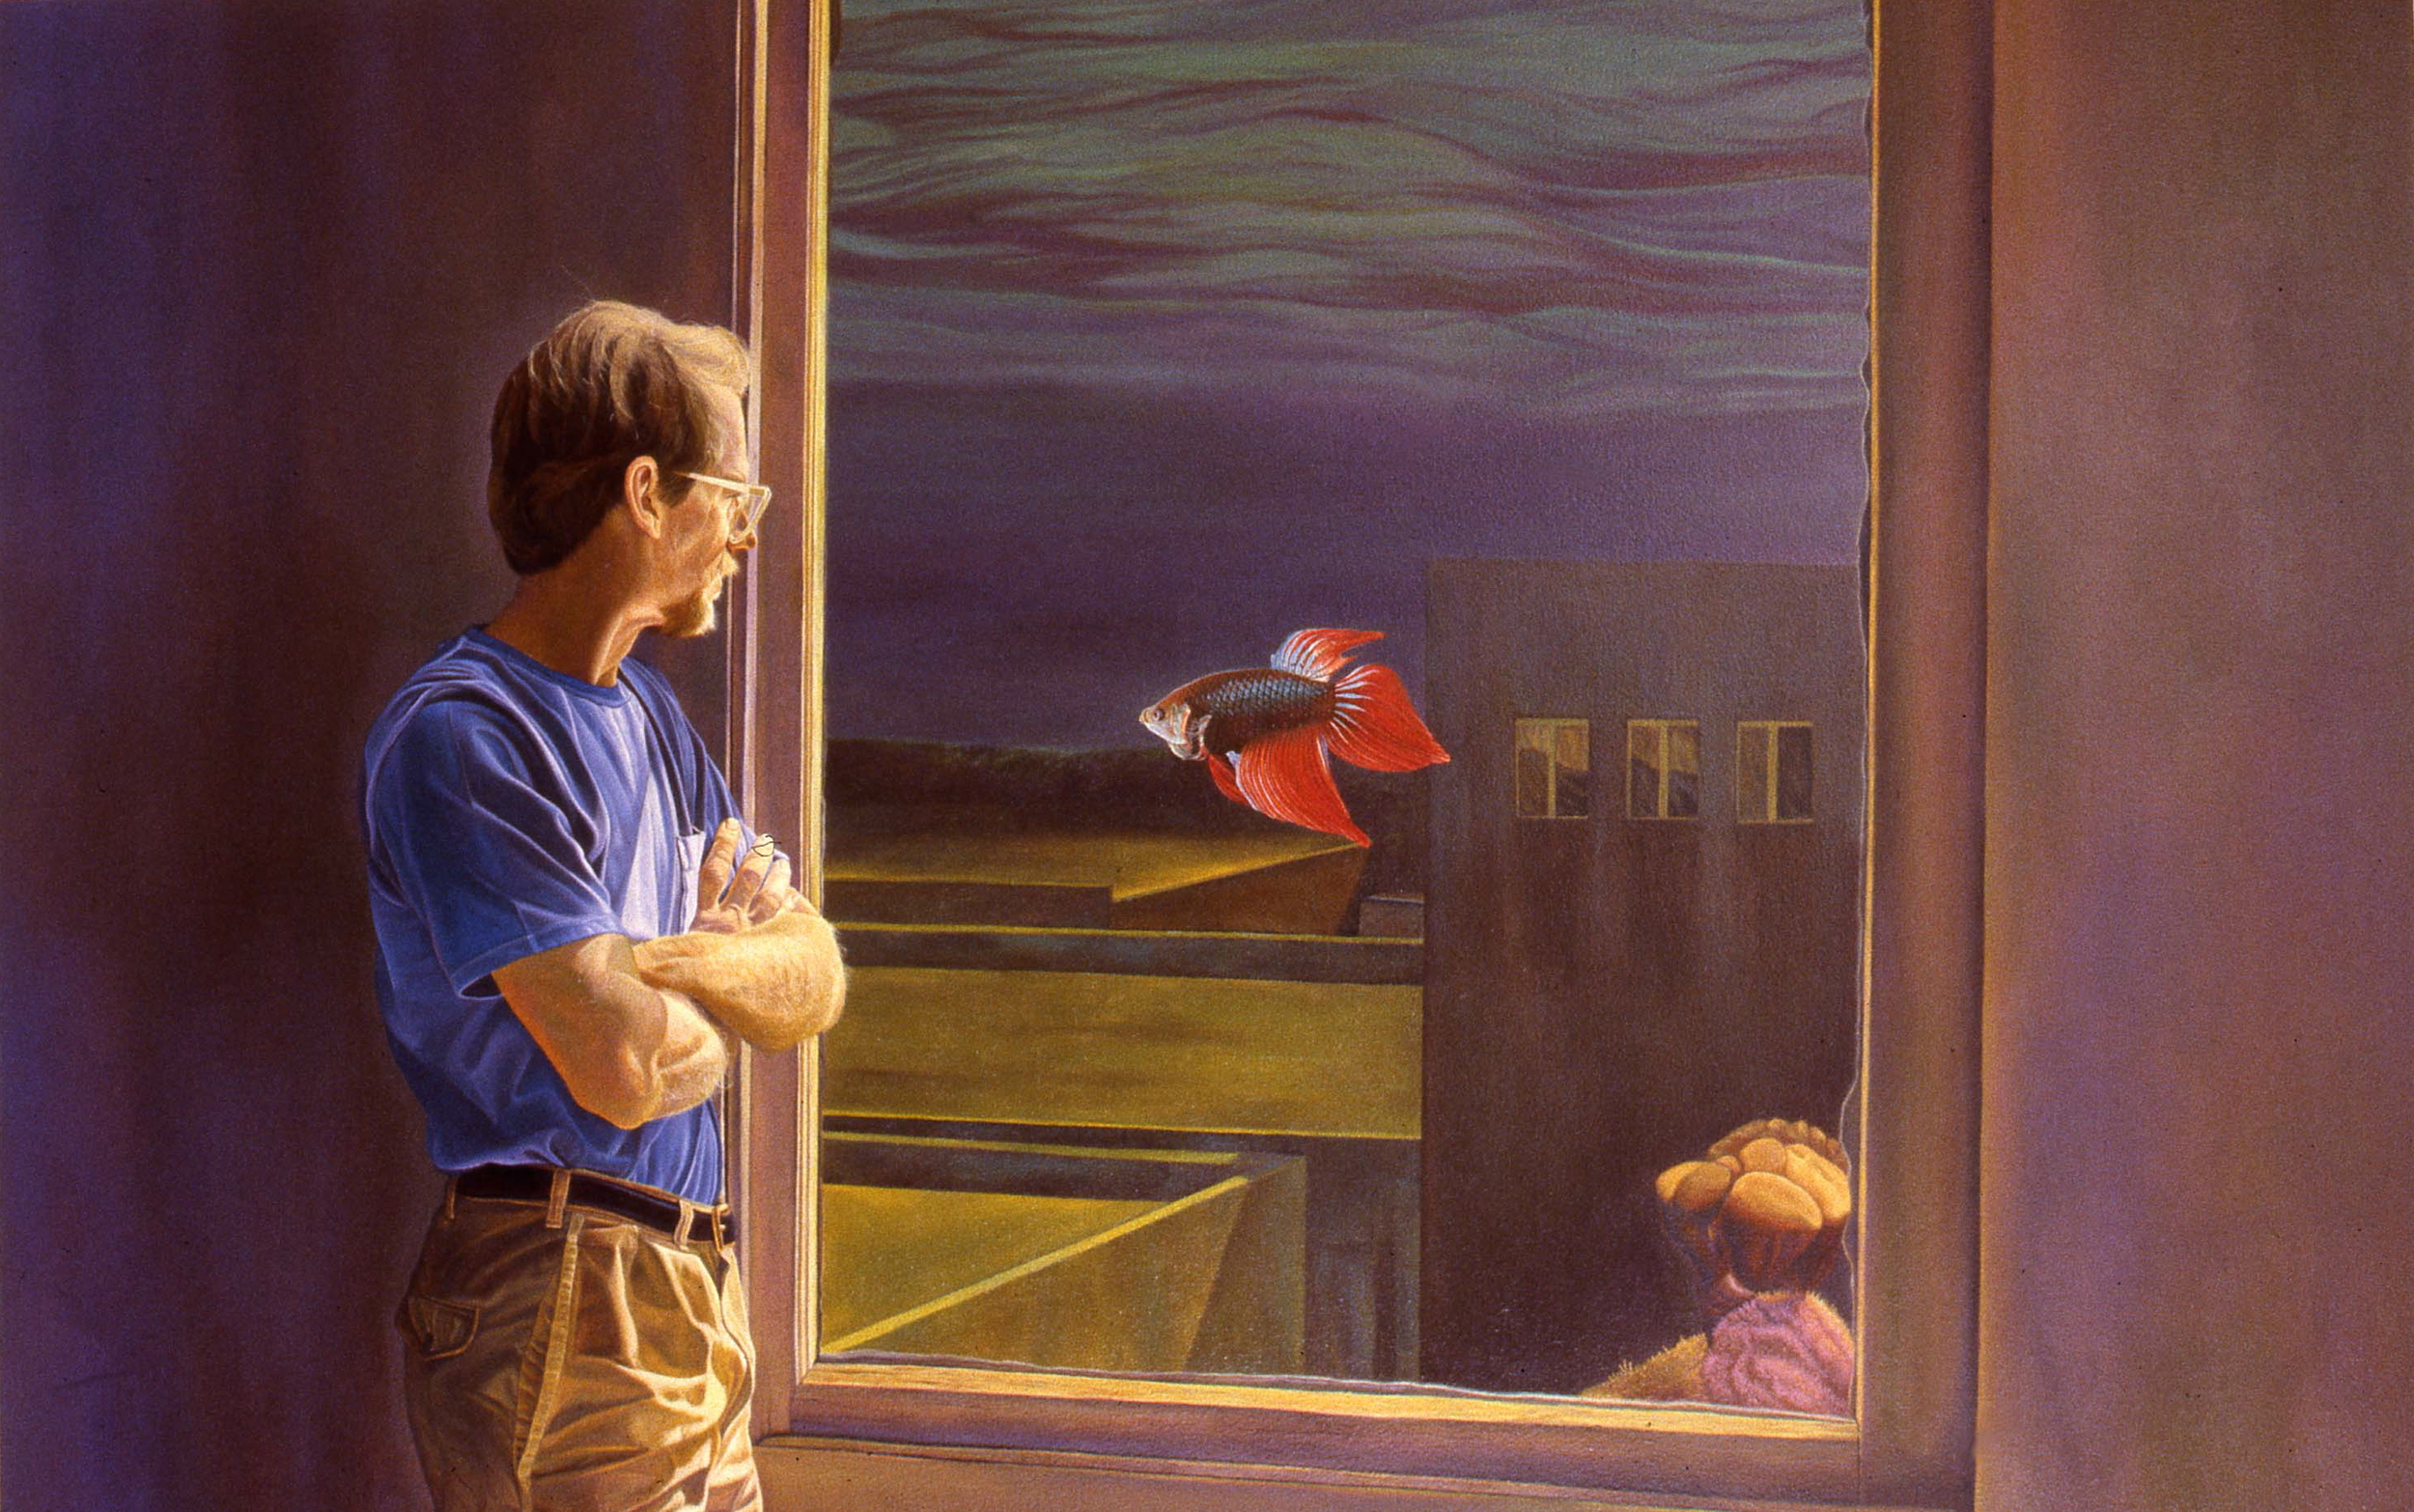 """""""Terry's View""""    1989 Oil on canvas   48 x 72 inches   © Richard Wyatt Jr."""